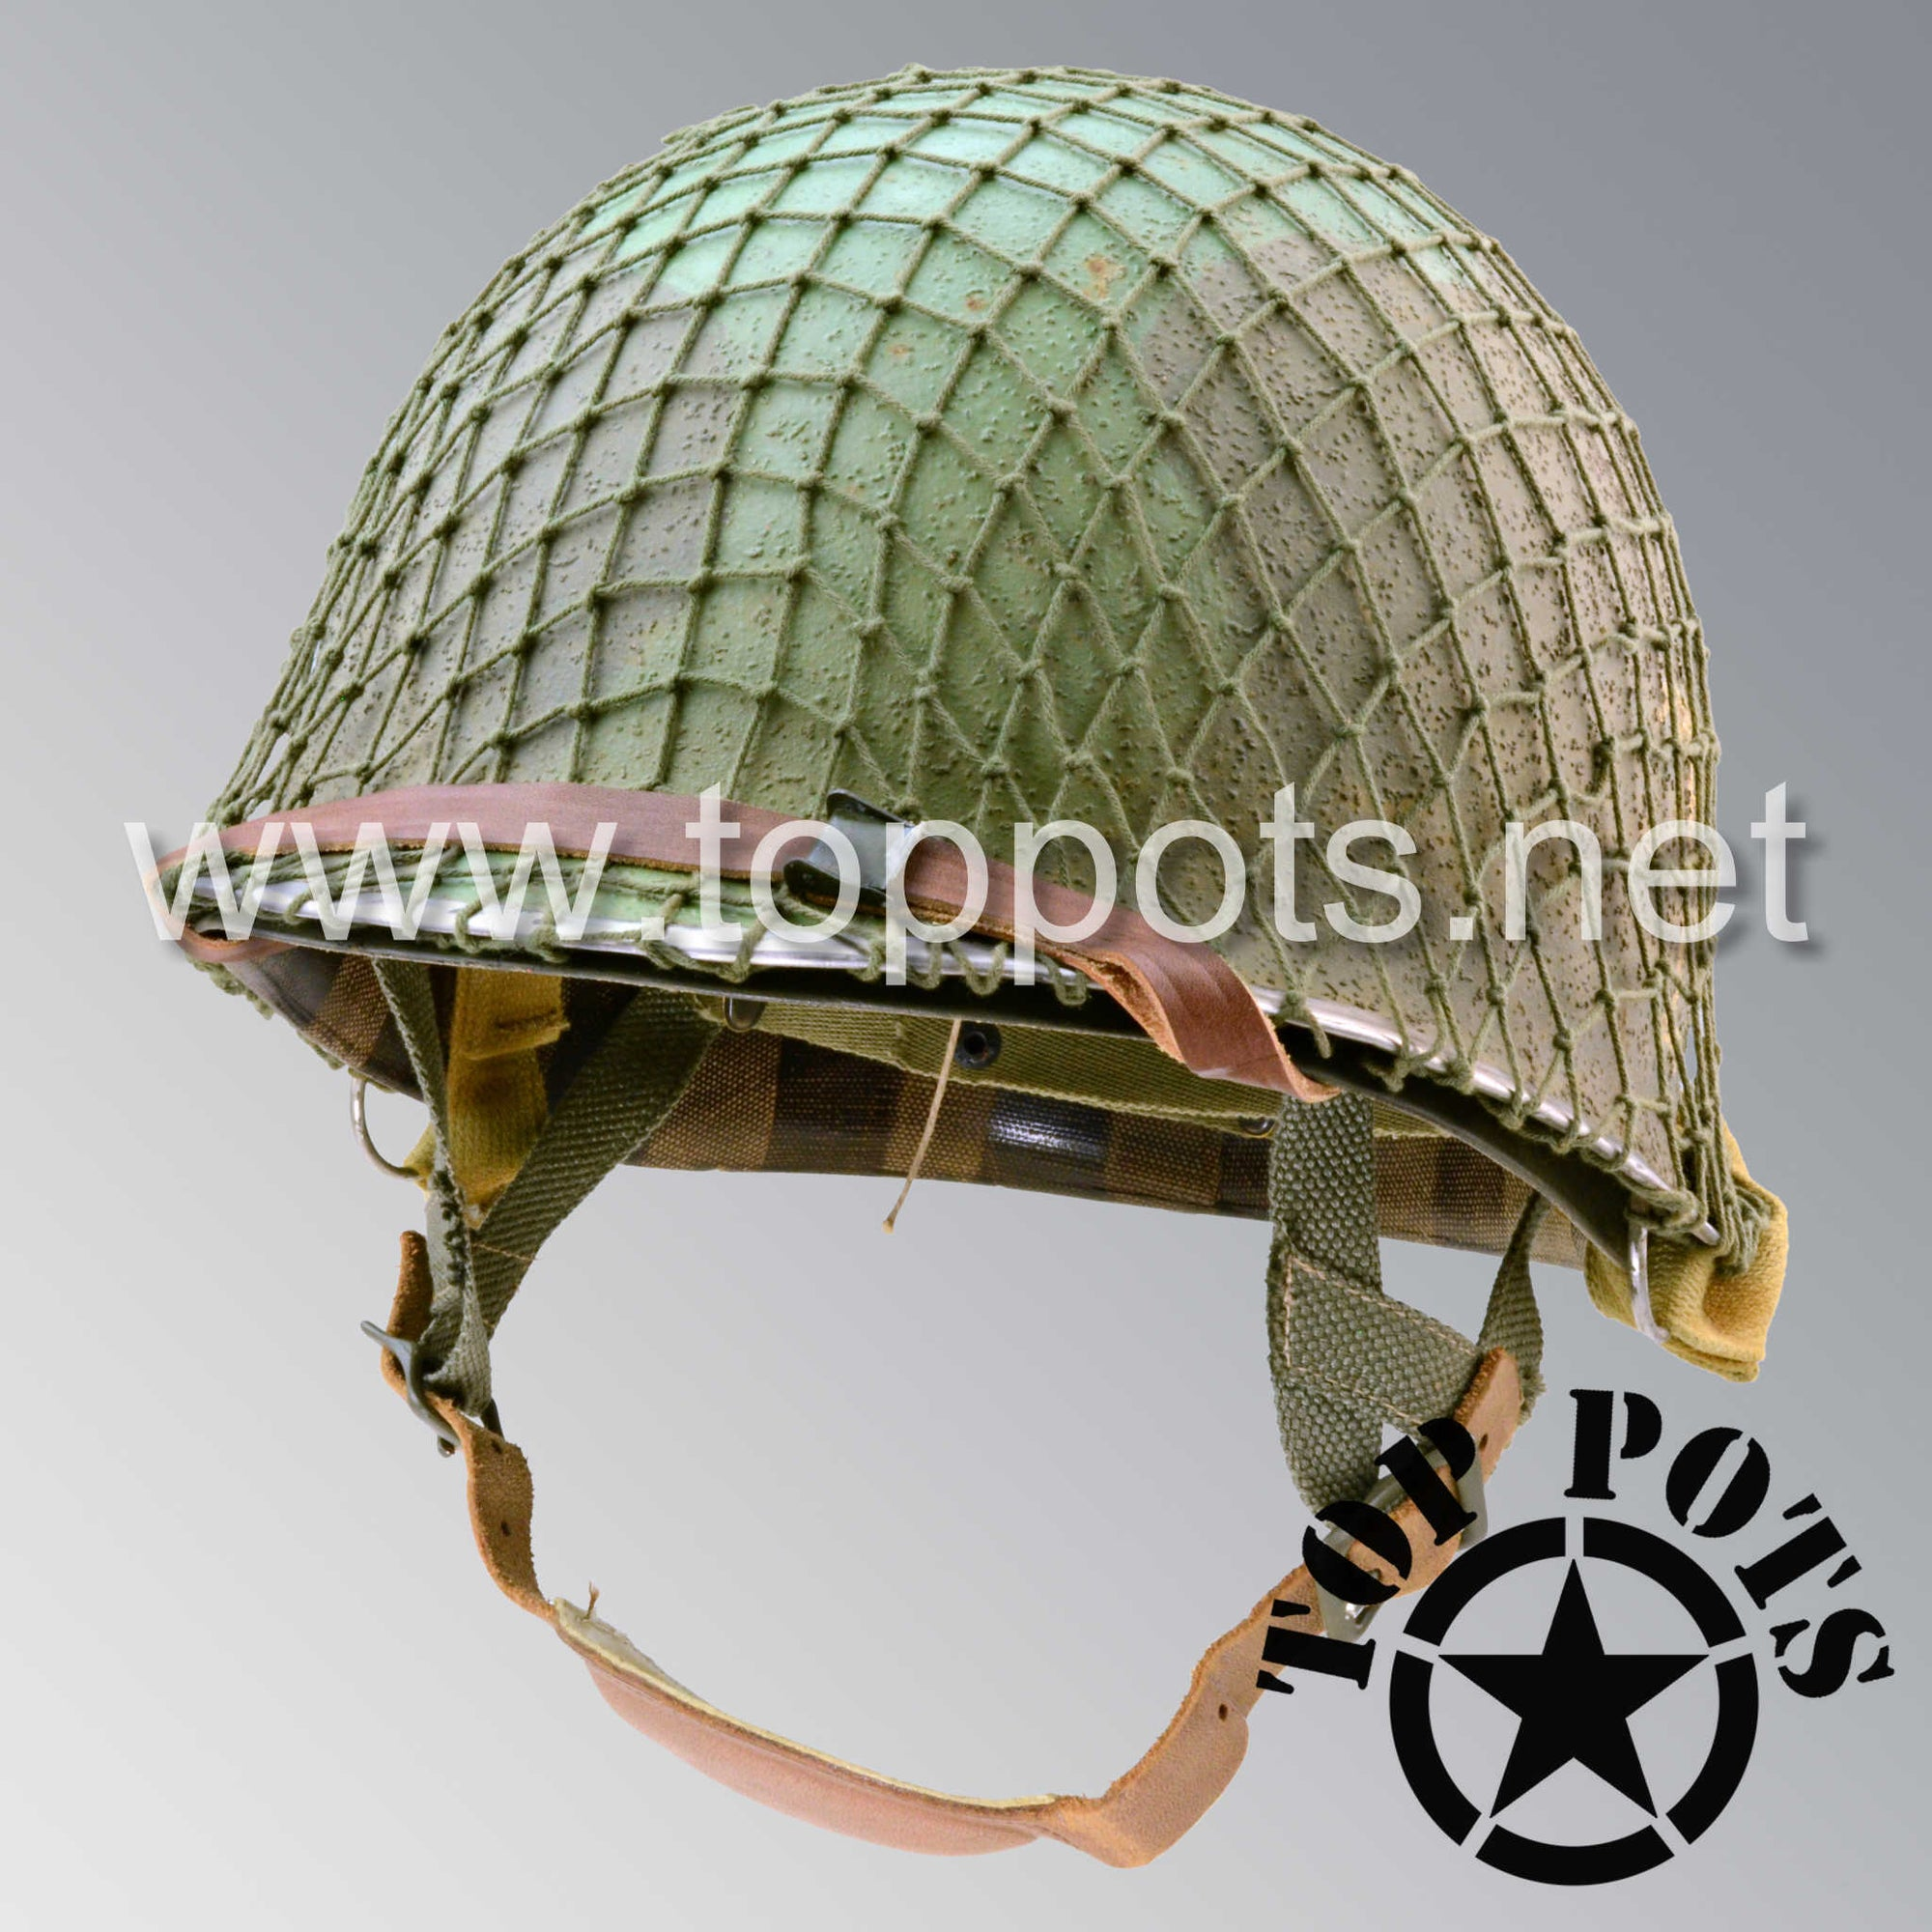 Image 1 of WWII US Army Aged Original M2 Paratrooper Airborne Helmet D Bale Shell and Liner with 551st PIR Pathfinder Camouflage Emblem and Net